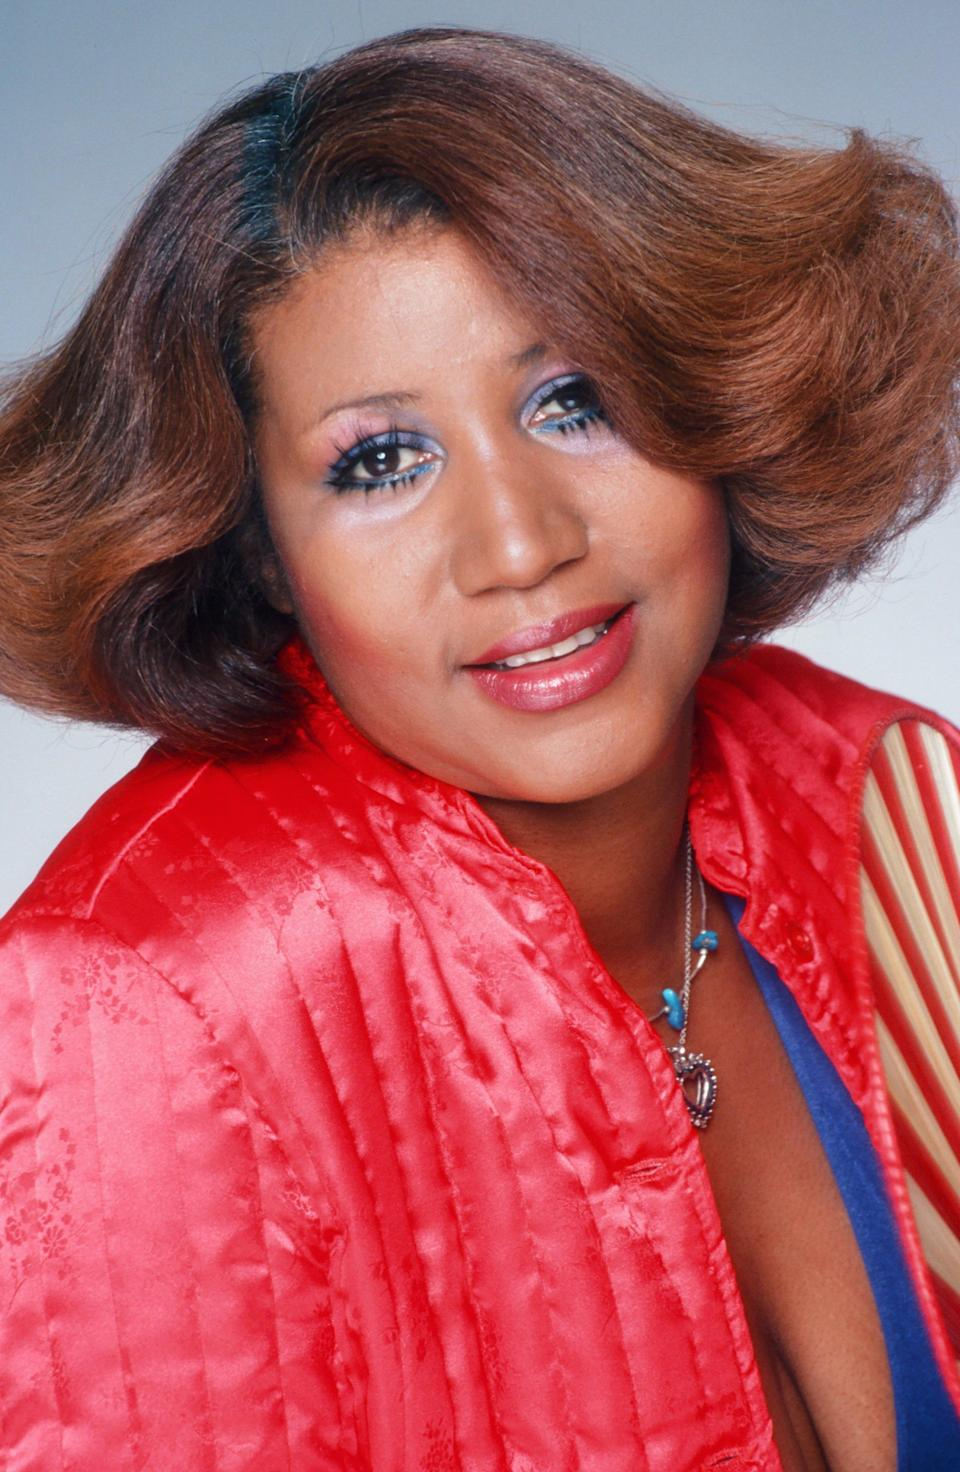 <p>Bring on the glam! Aretha Franklin poses for a portrait rocking a caramel-colored flipped hairstyle, blue eyeliner, and cherry red lipstick to match her bomber jacket. (Photo by Harry Langdon/Getty Images) </p>